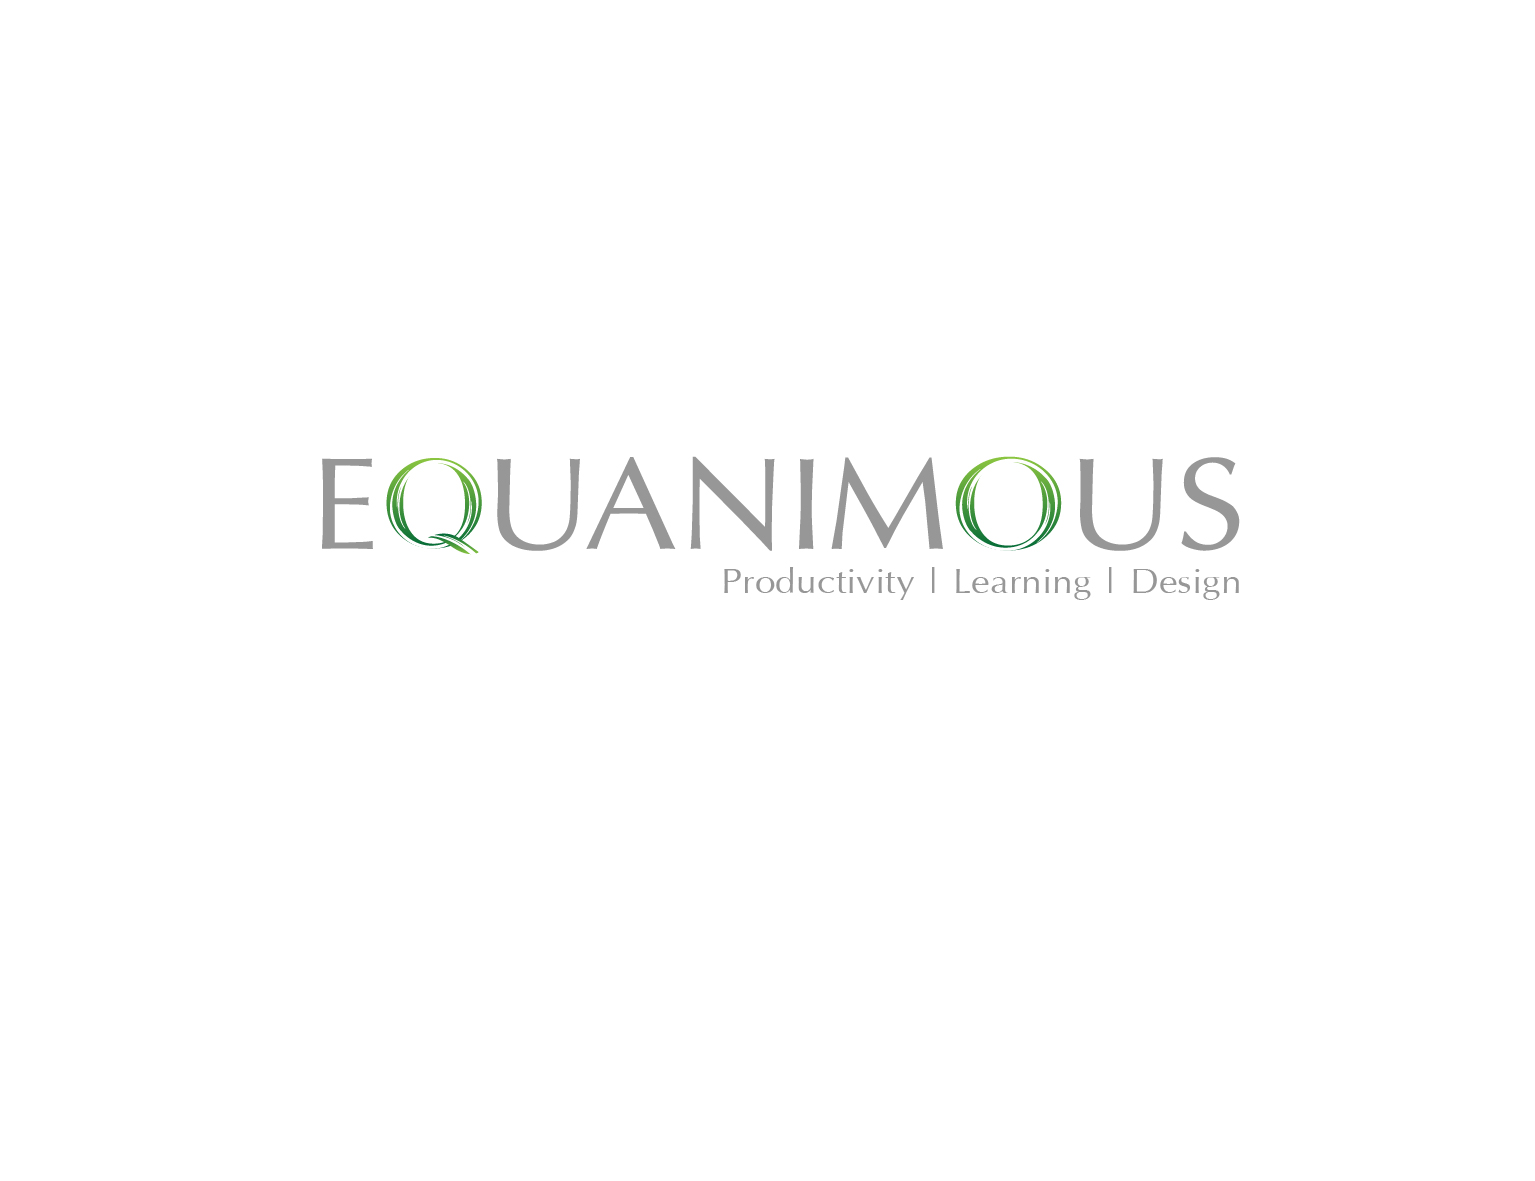 Logo Design by 3draw - Entry No. 577 in the Logo Design Contest Logo Design : EQUANIMOUS : Productivity | Learning | Design.